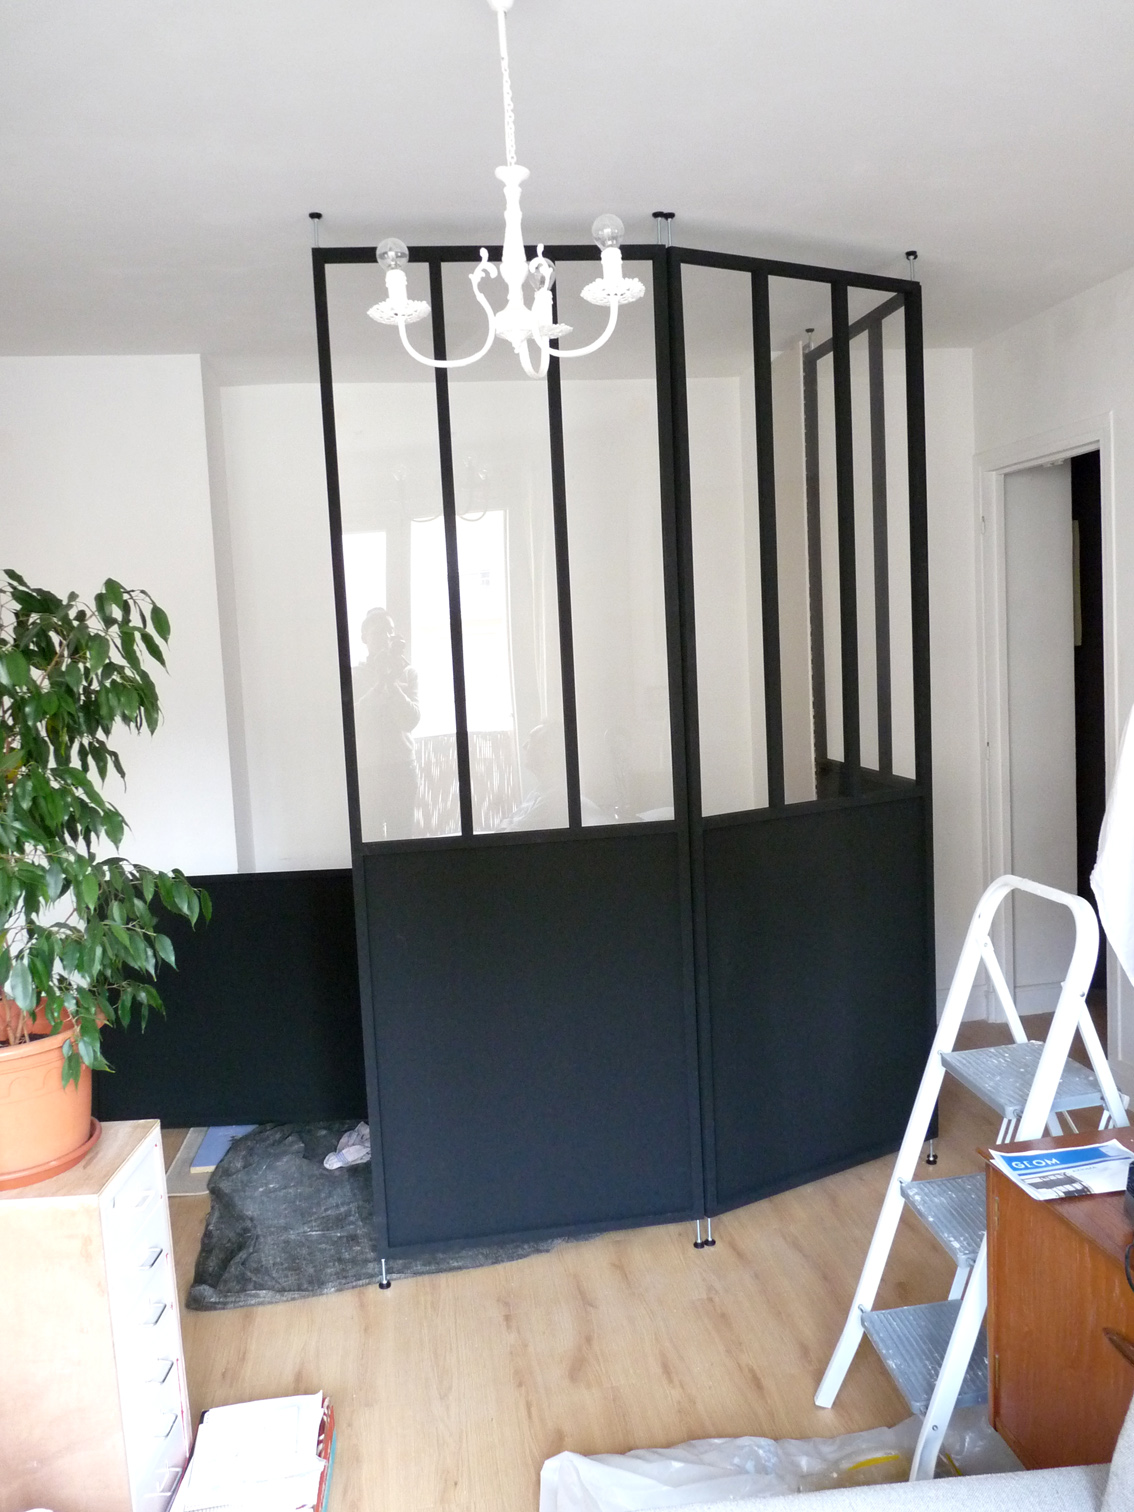 2eme porte a gauche cr ation d 39 un coin nuit dans une alc ve partie 1. Black Bedroom Furniture Sets. Home Design Ideas